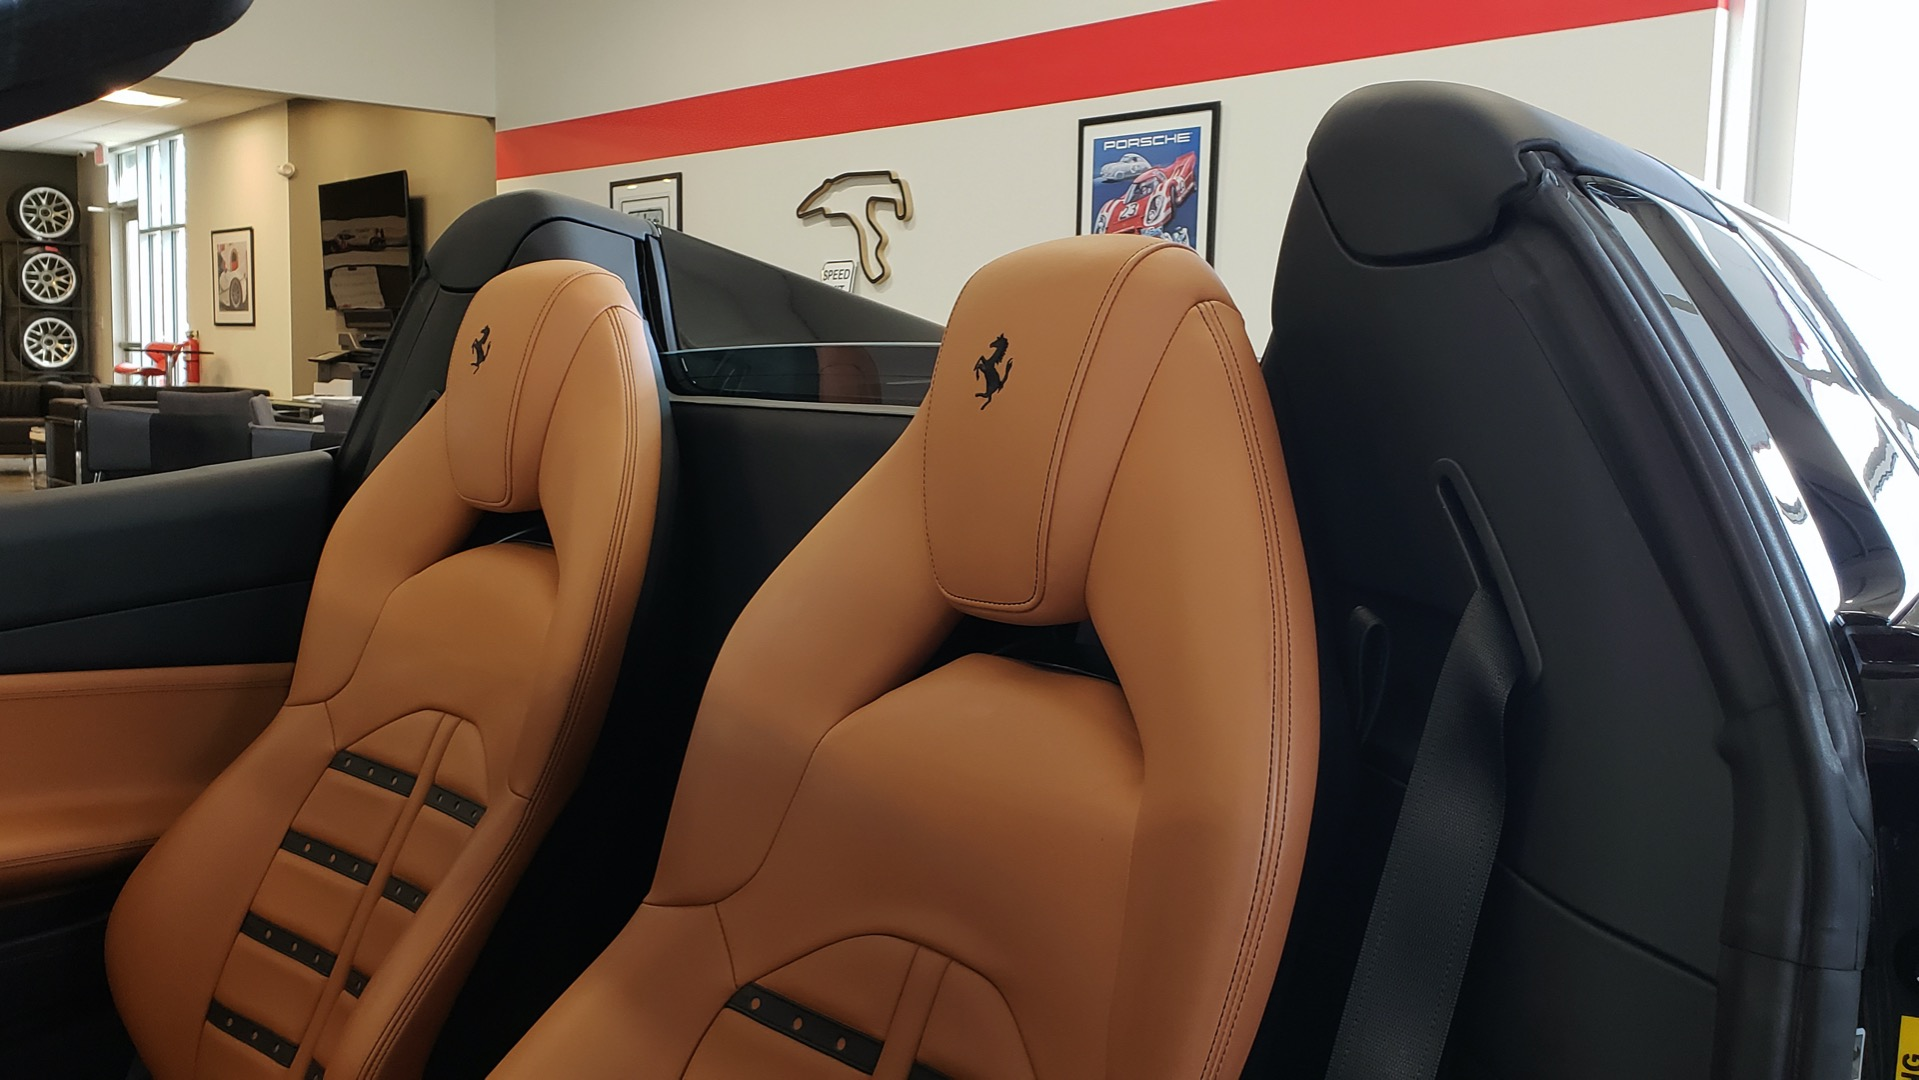 Used 2017 Ferrari 488 Spider SUSP LFT / JBL SND / SPRT EXH / F1 TRANS for sale $315,000 at Formula Imports in Charlotte NC 28227 60